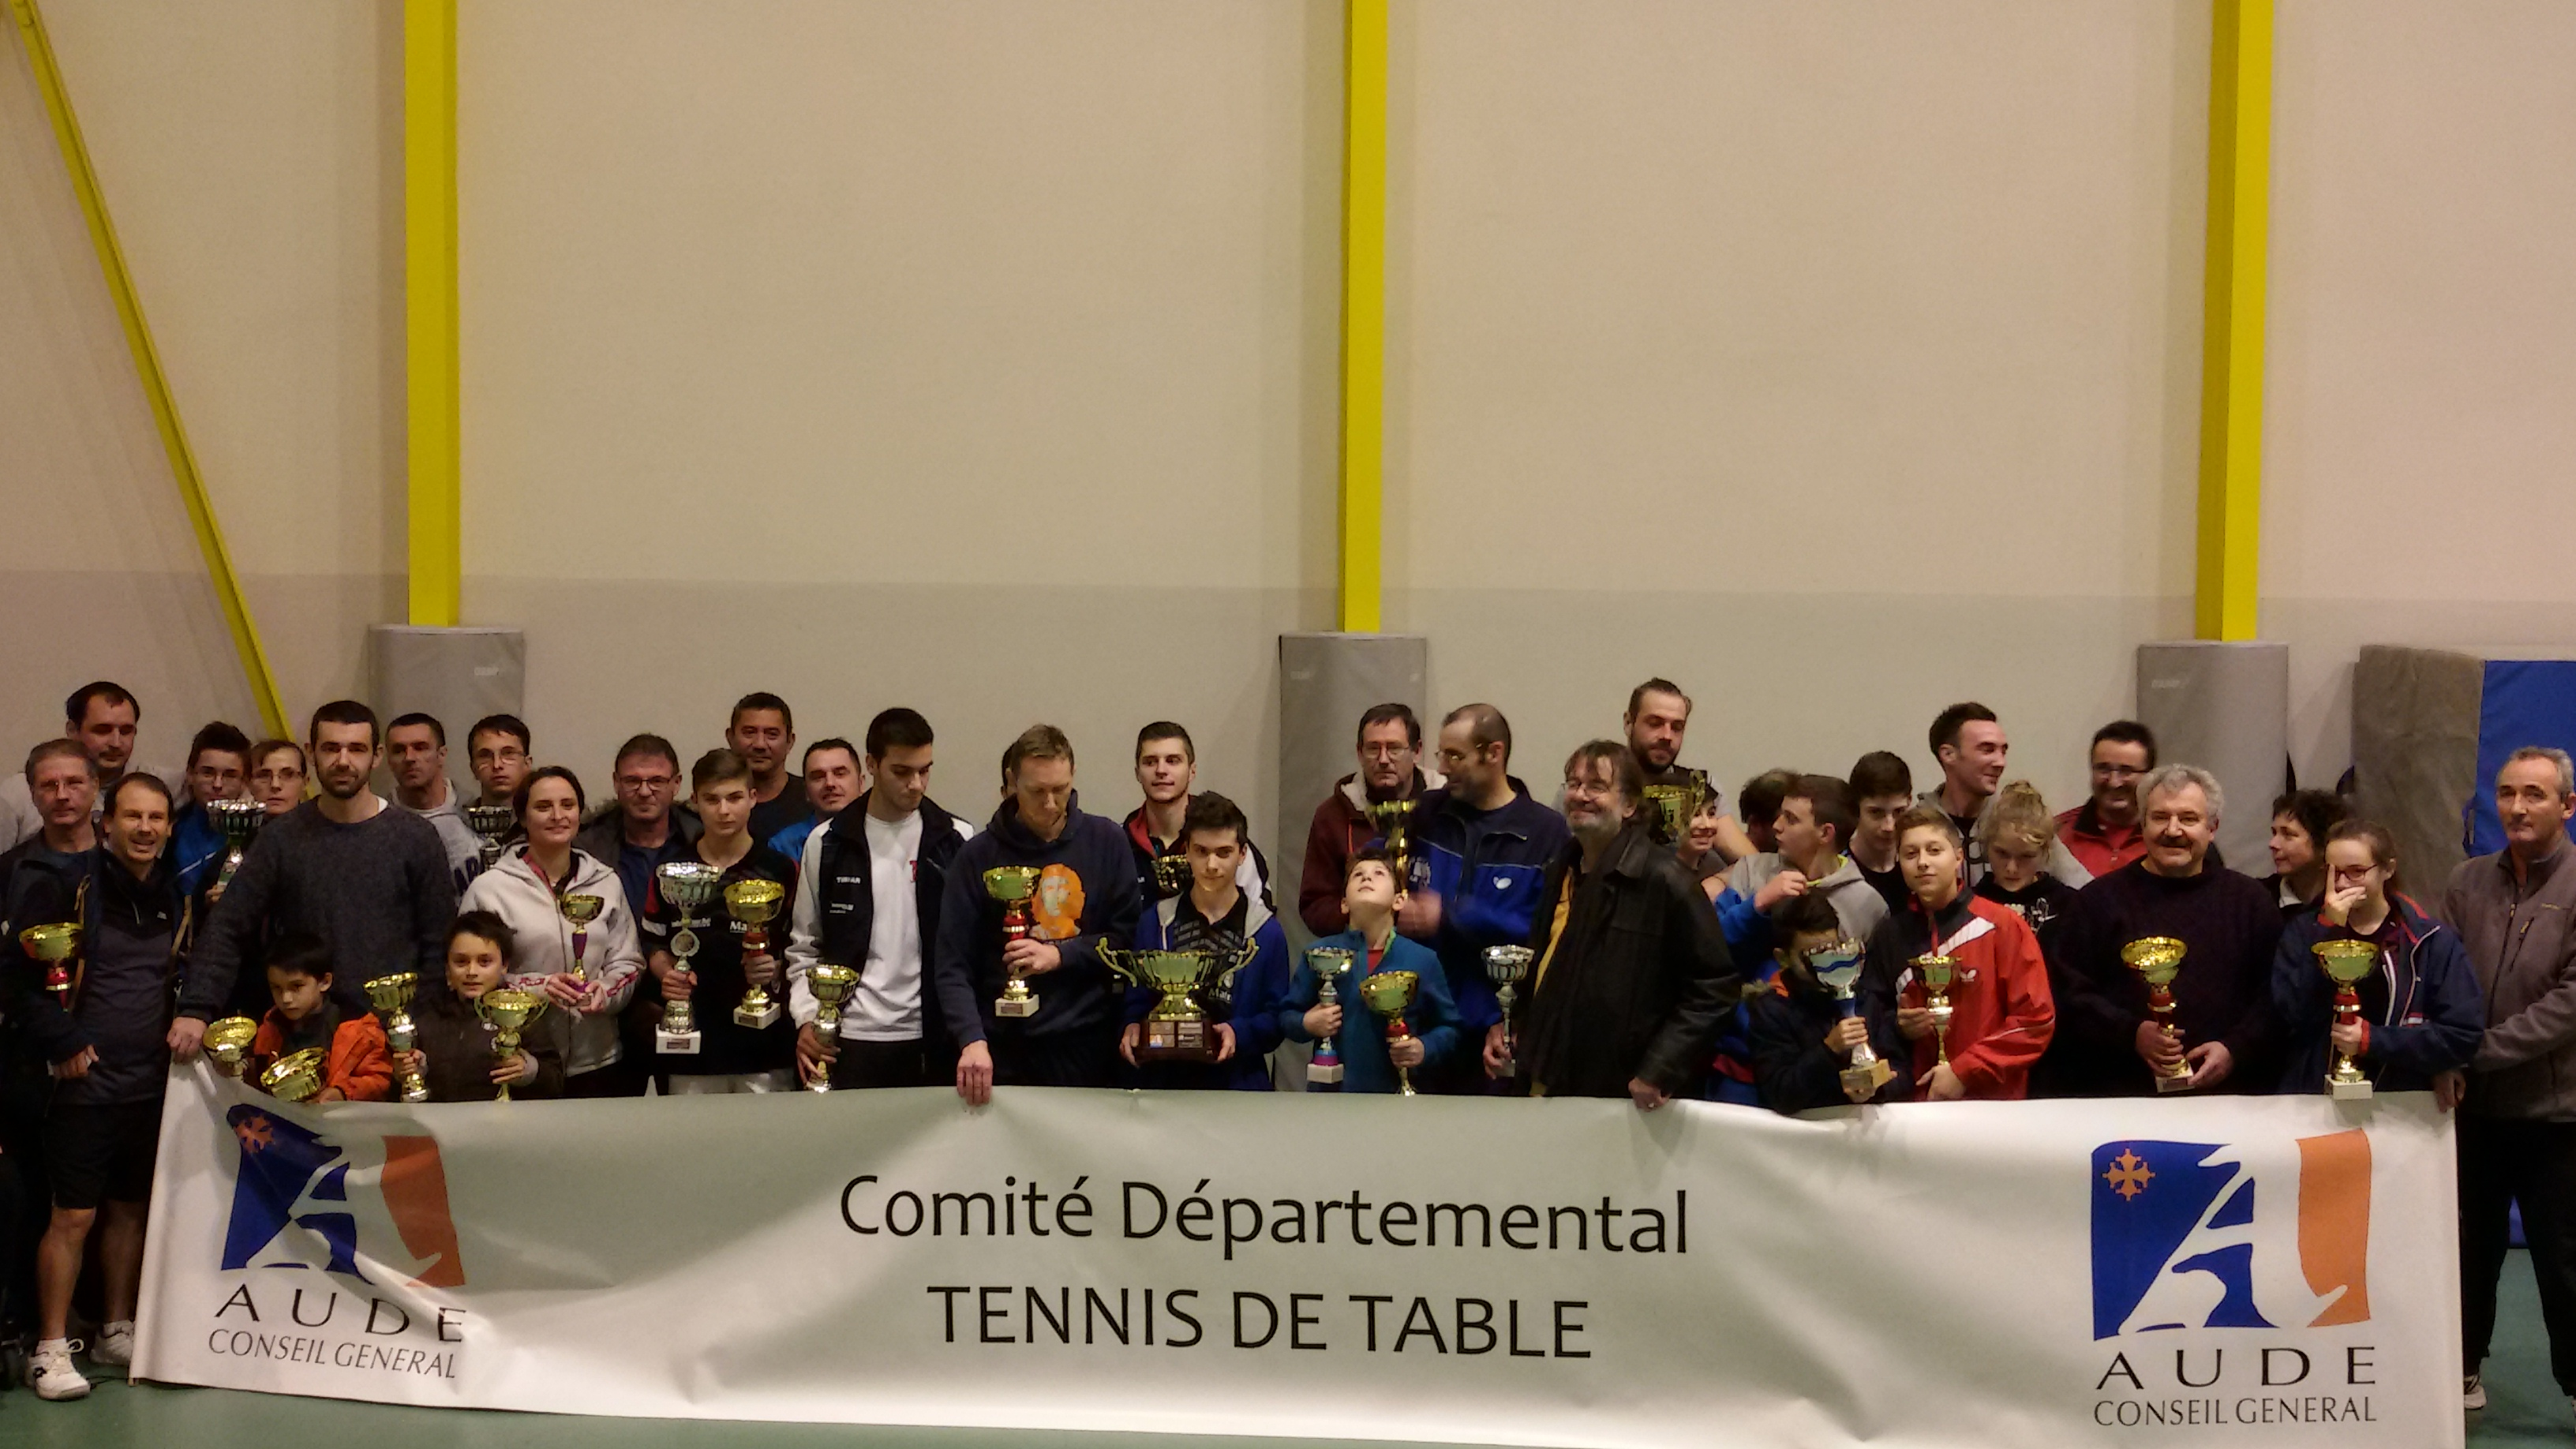 TENNIS DE TABLE >> RÉSULTATS DE LA COUPE DE L'AUDE